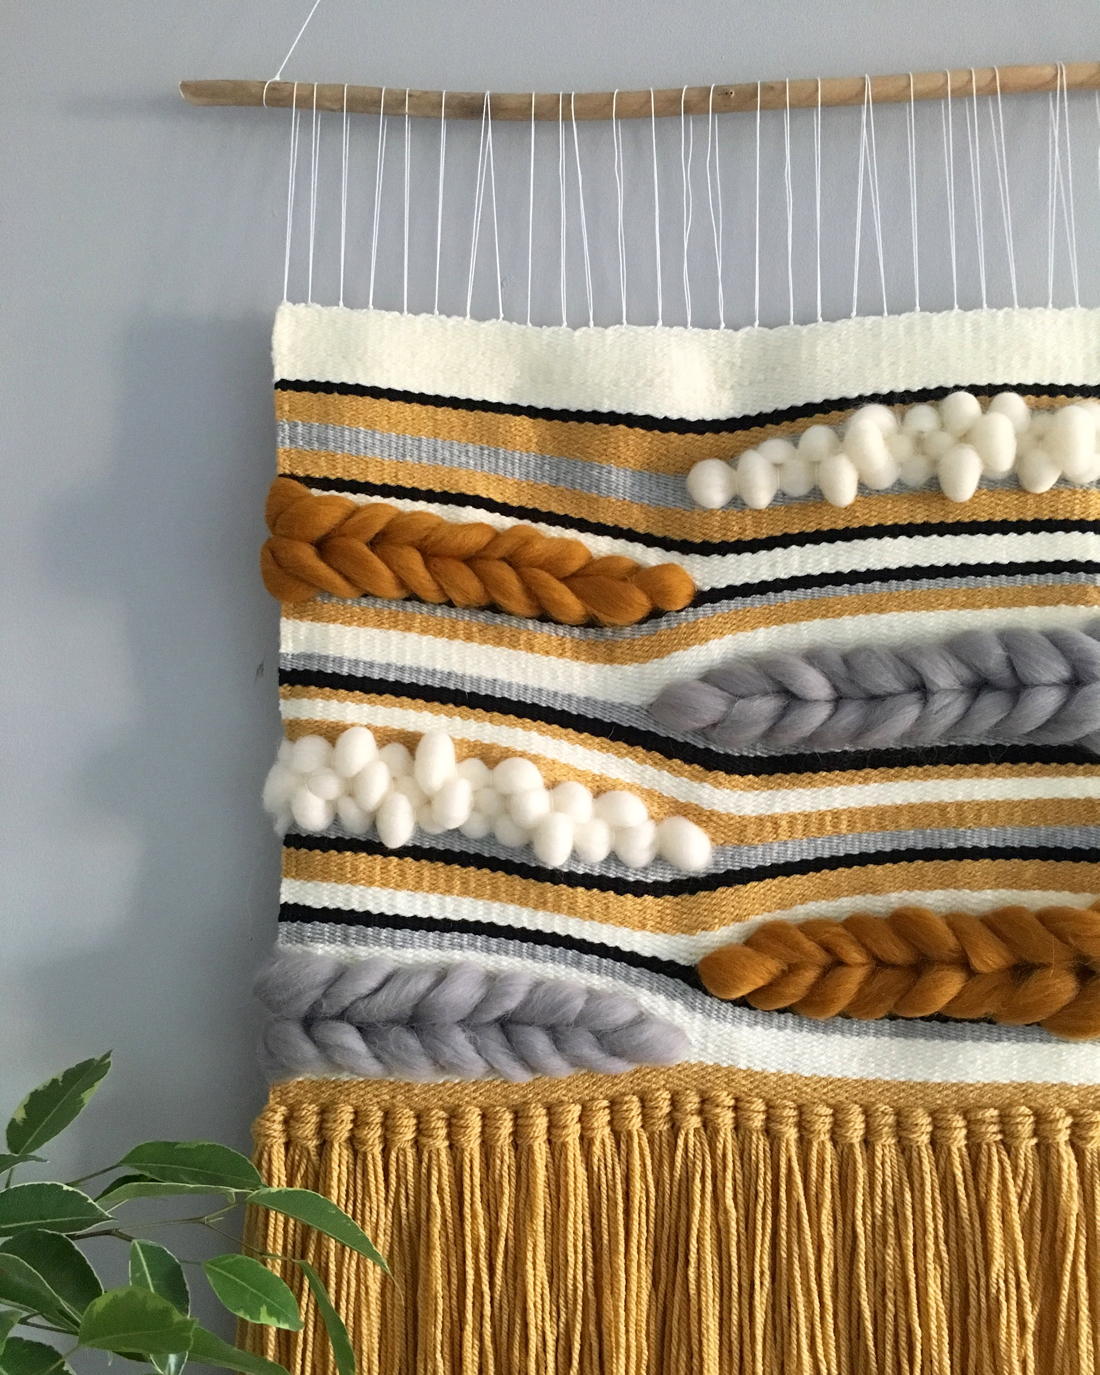 טרנדים בעיצוב ל 2019, טרנדים בעיצוב פנים, design trends 2019, textile art